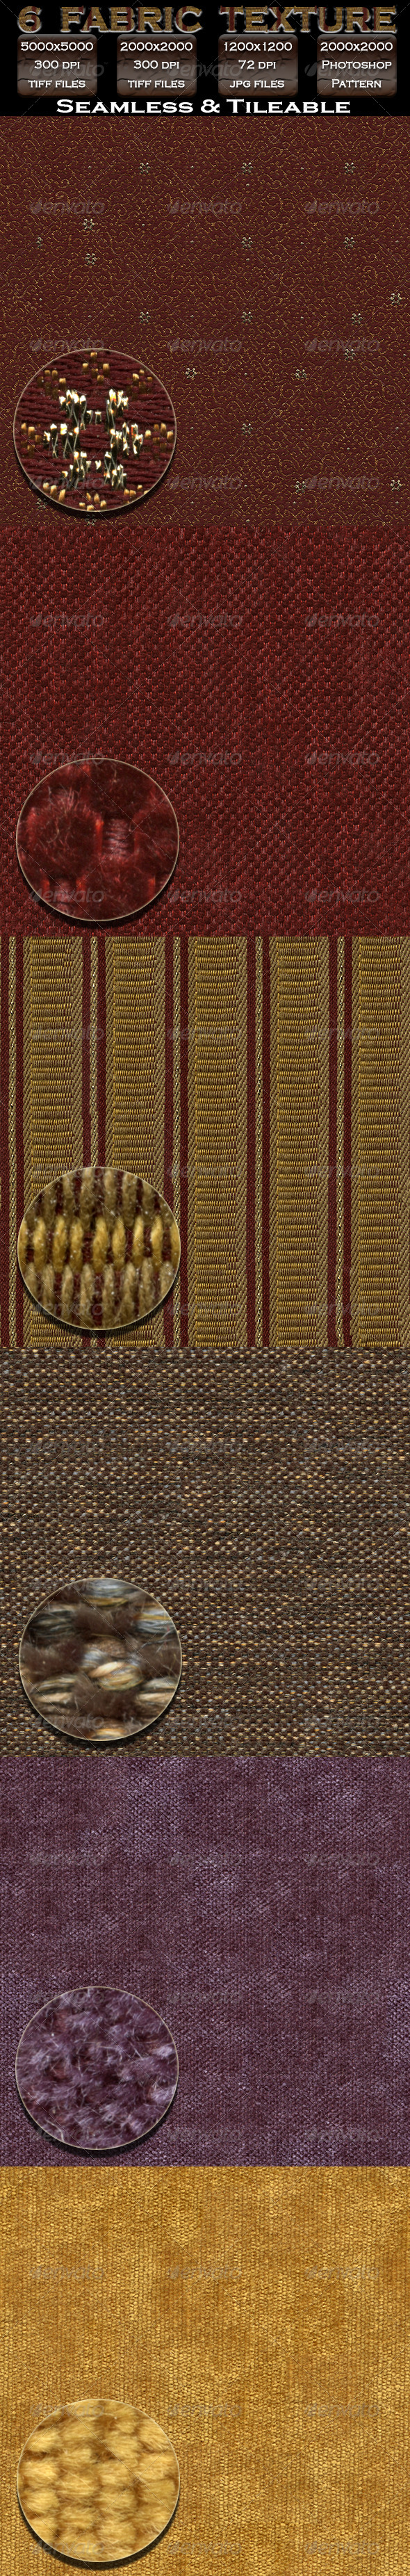 6 Fabric Texture Pack